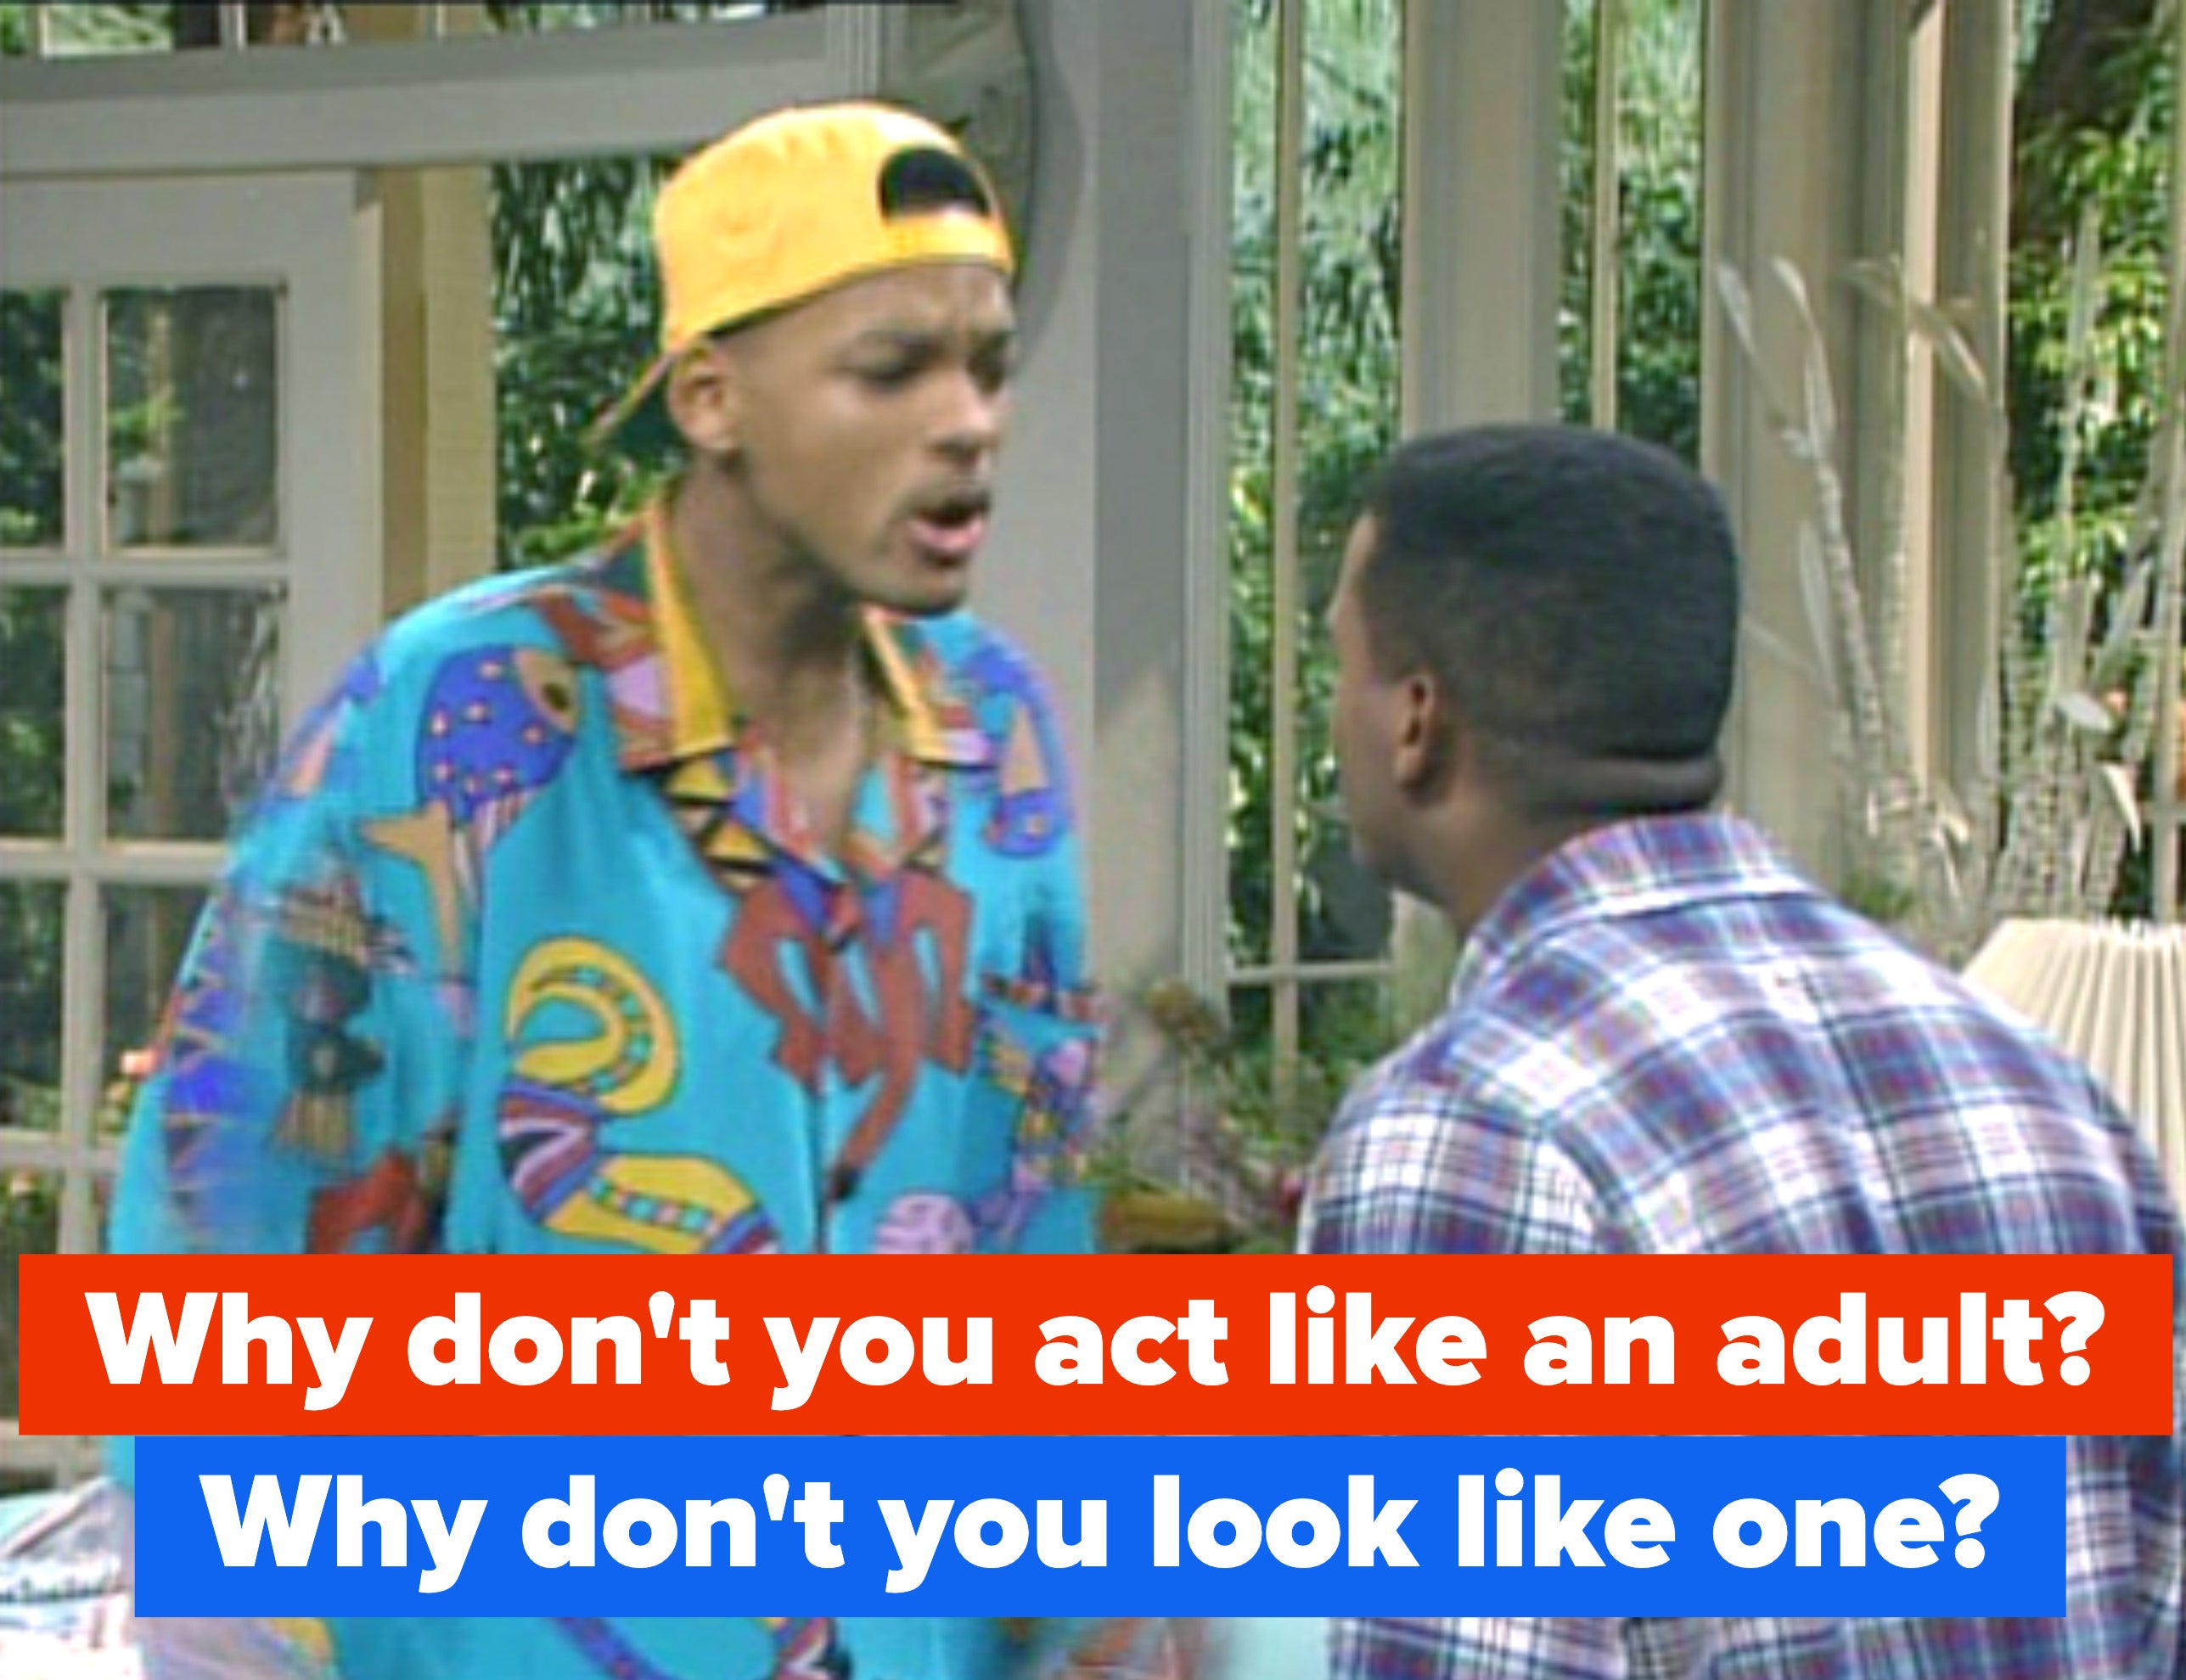 """Carlton asks why Will doesn't act like an adult and Will responds, """"Why don't you look like one?"""""""